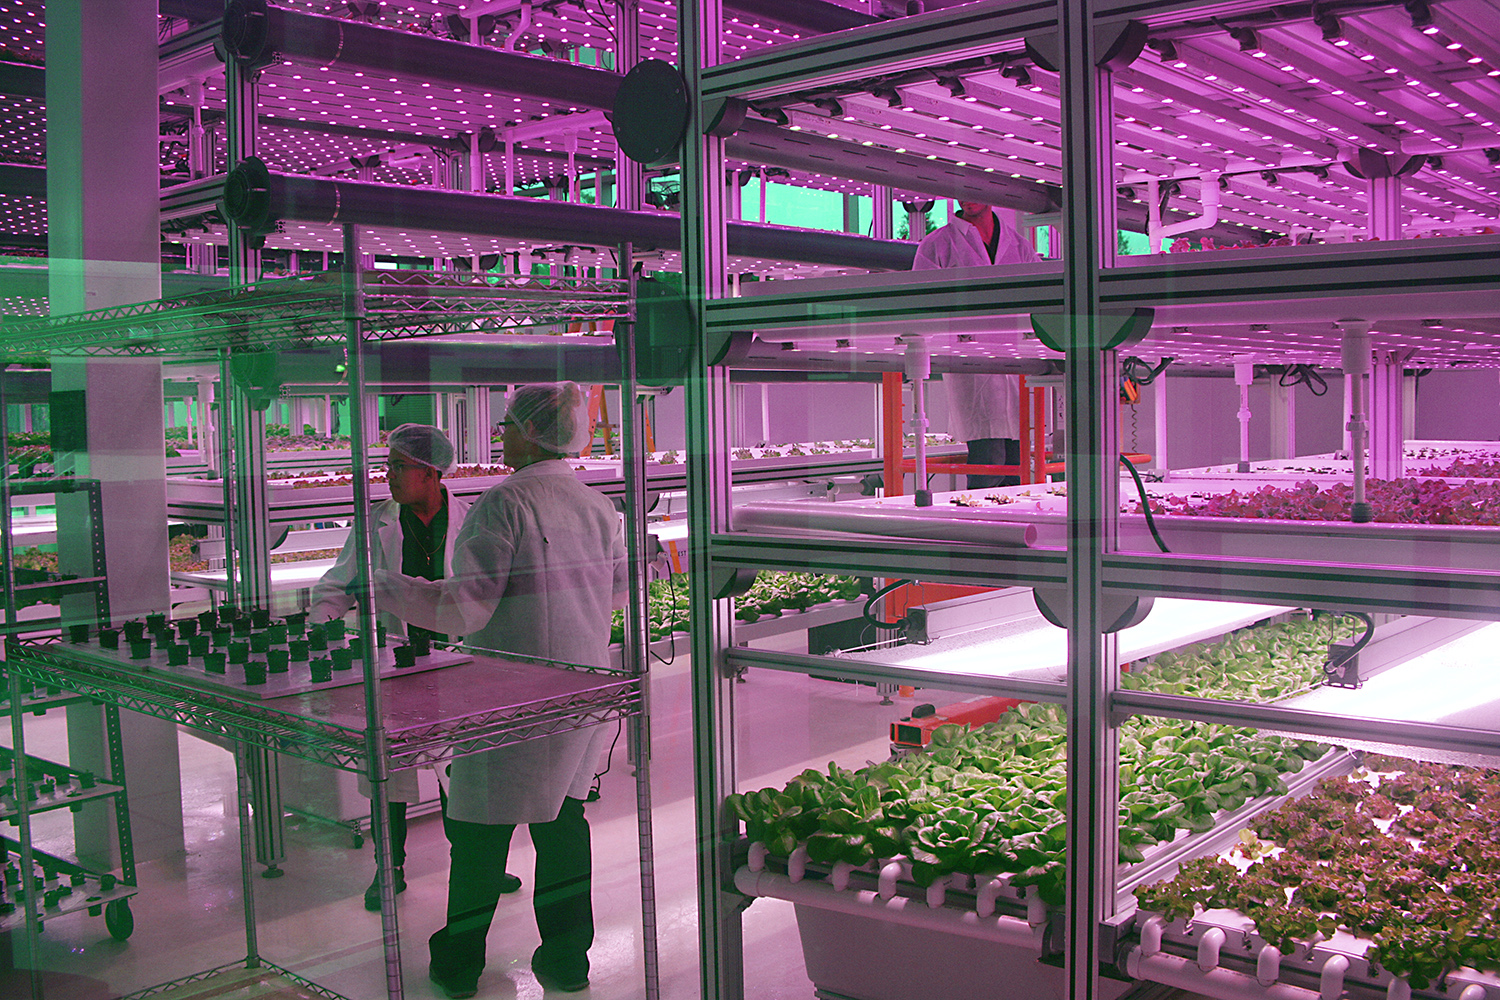 Indoor Farms Driven By IoT and Data